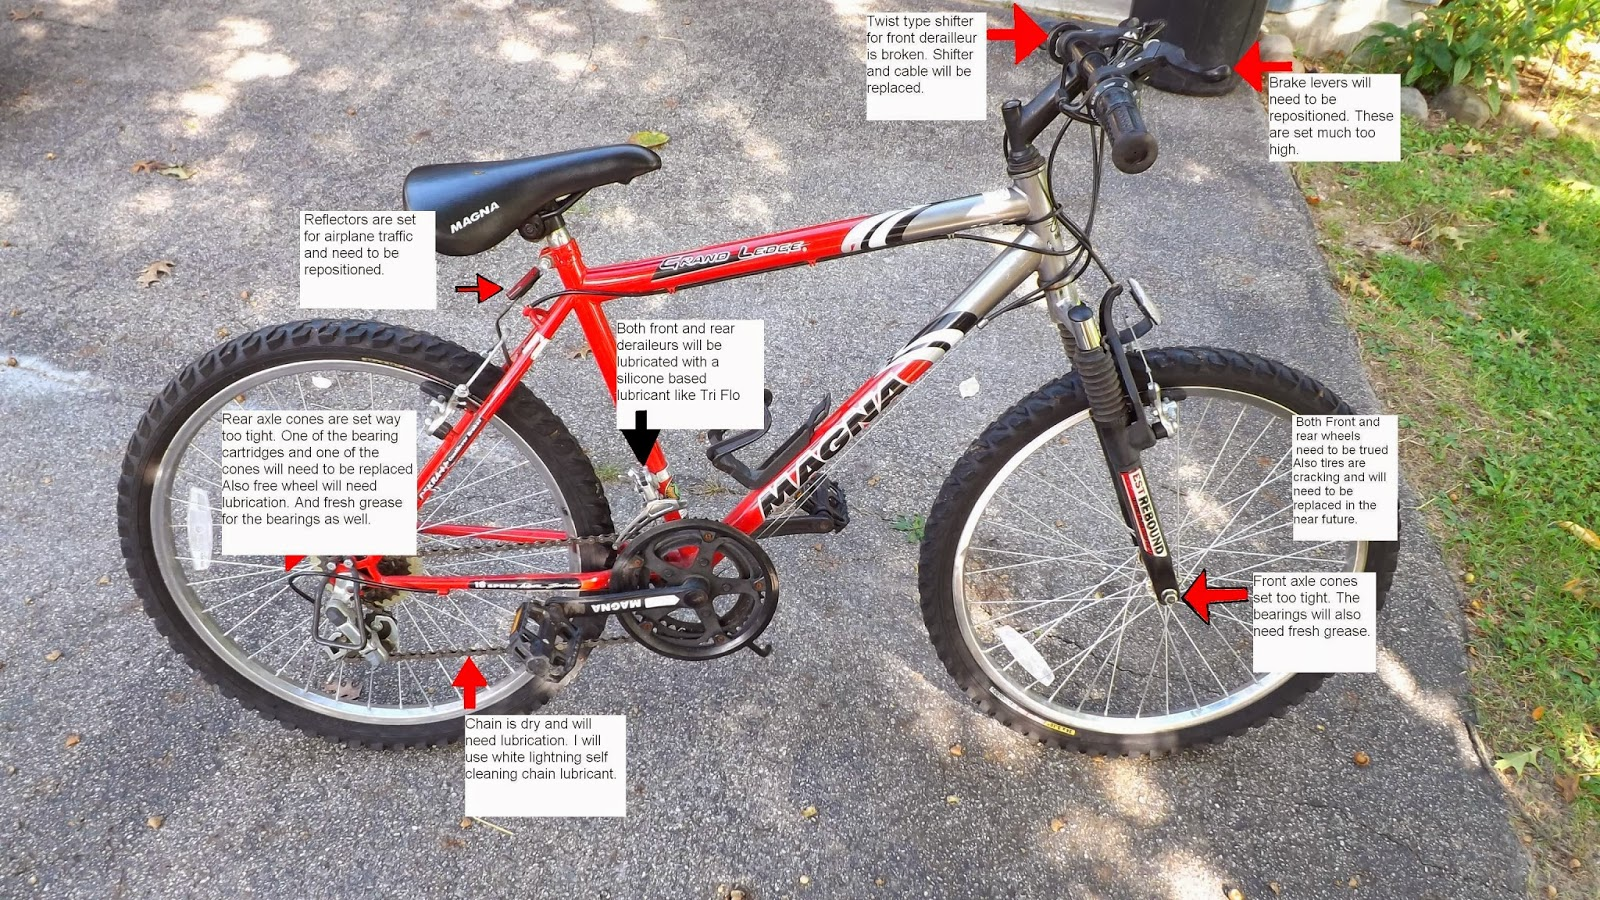 D115 shimano Cone Axle Front besides Wiring Diagram Baja 150cc Atvs P 10424 further Tire Parts Diagram as well File bicycle centre pull brakes likewise Rear Derailleur Adjustment. on bmx parts diagram